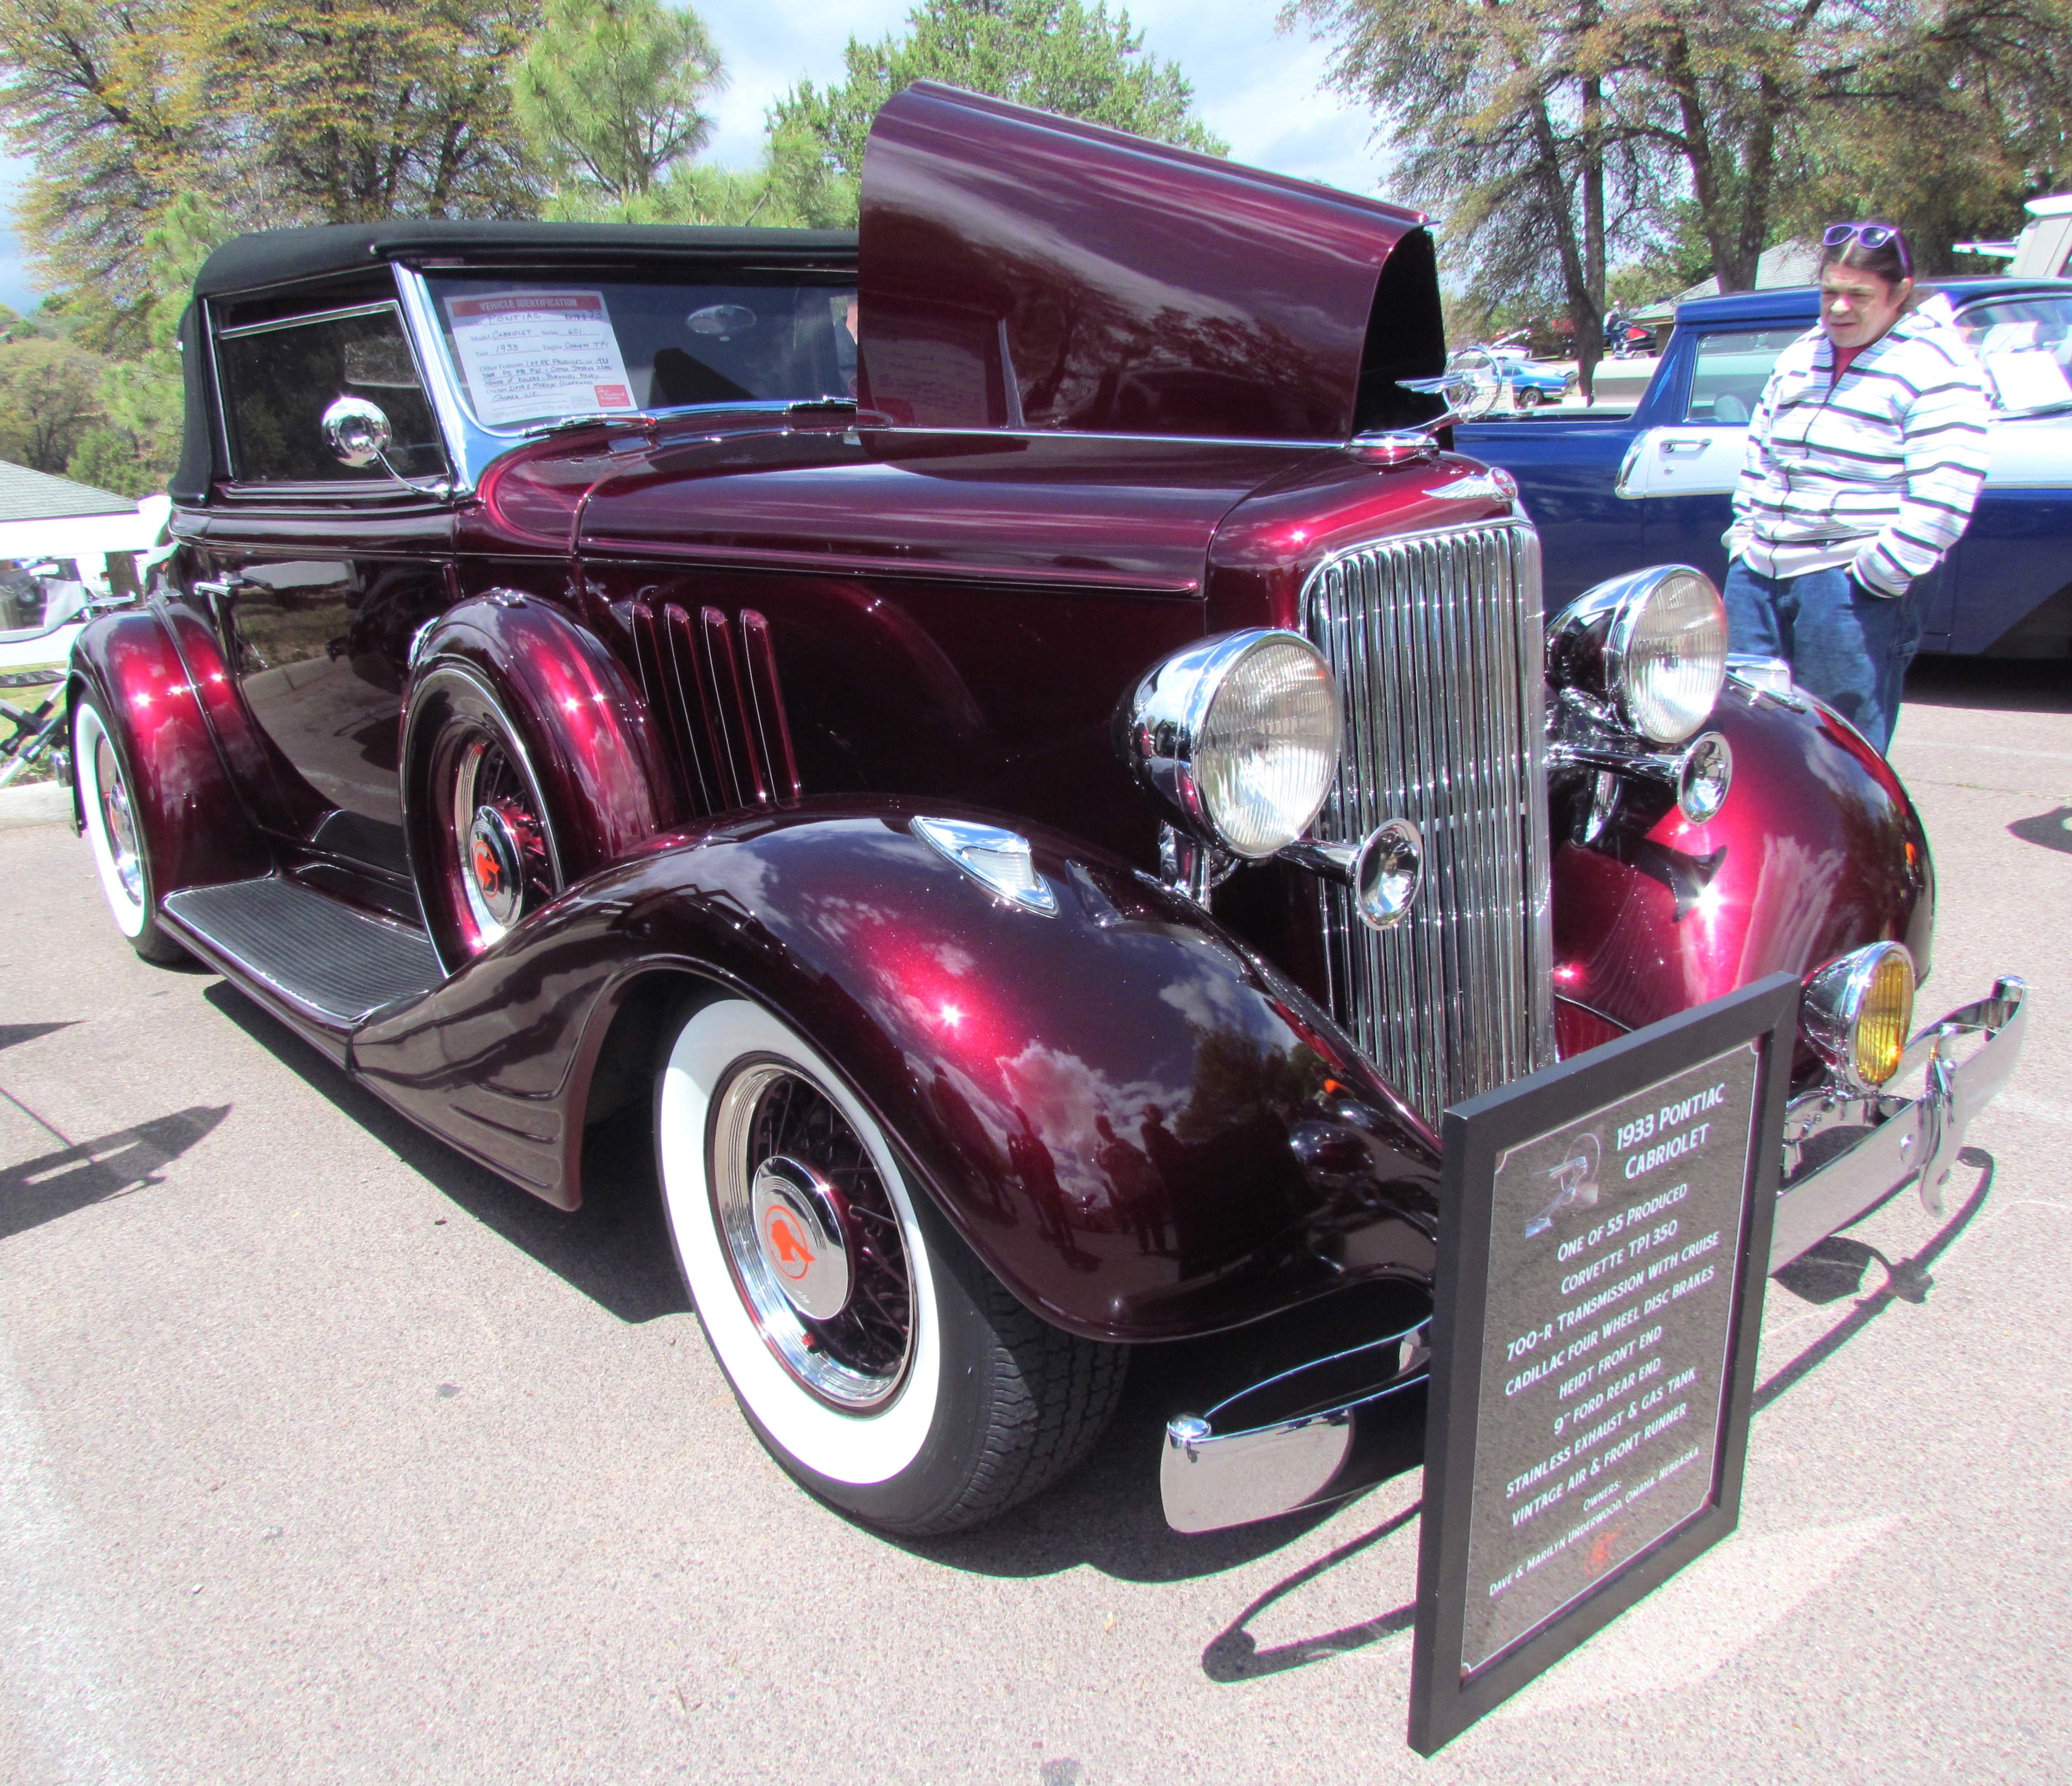 Eye Candy: 22nd Annual Beeline Cruise-In At Payson